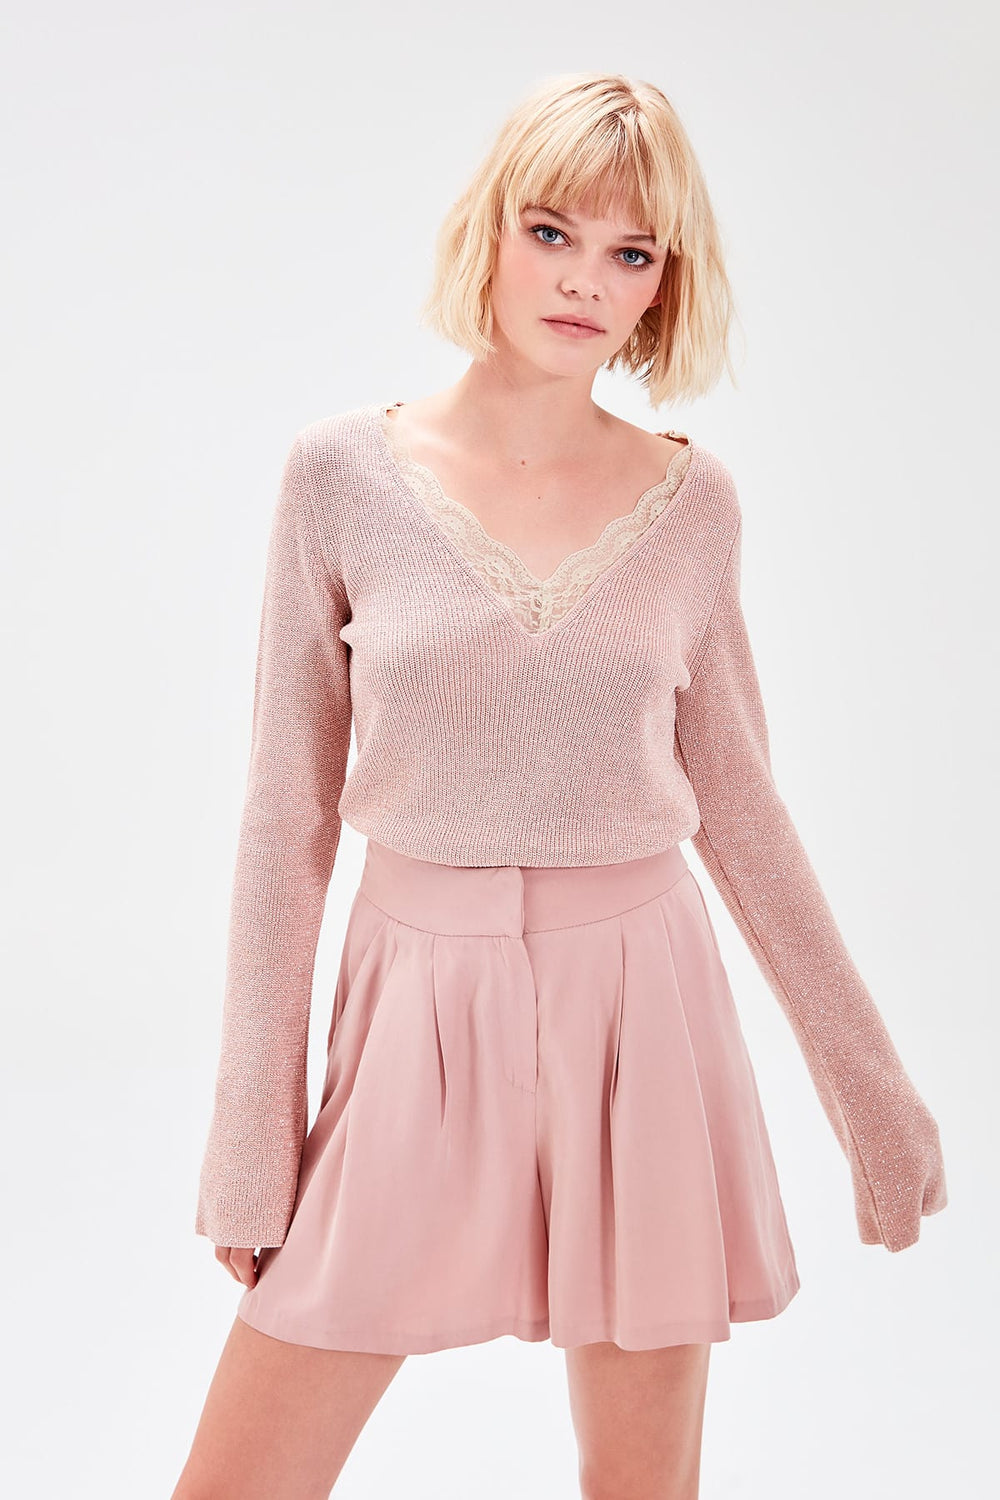 WOMEN-Powder Lace Detail Sweater - Top Maxy